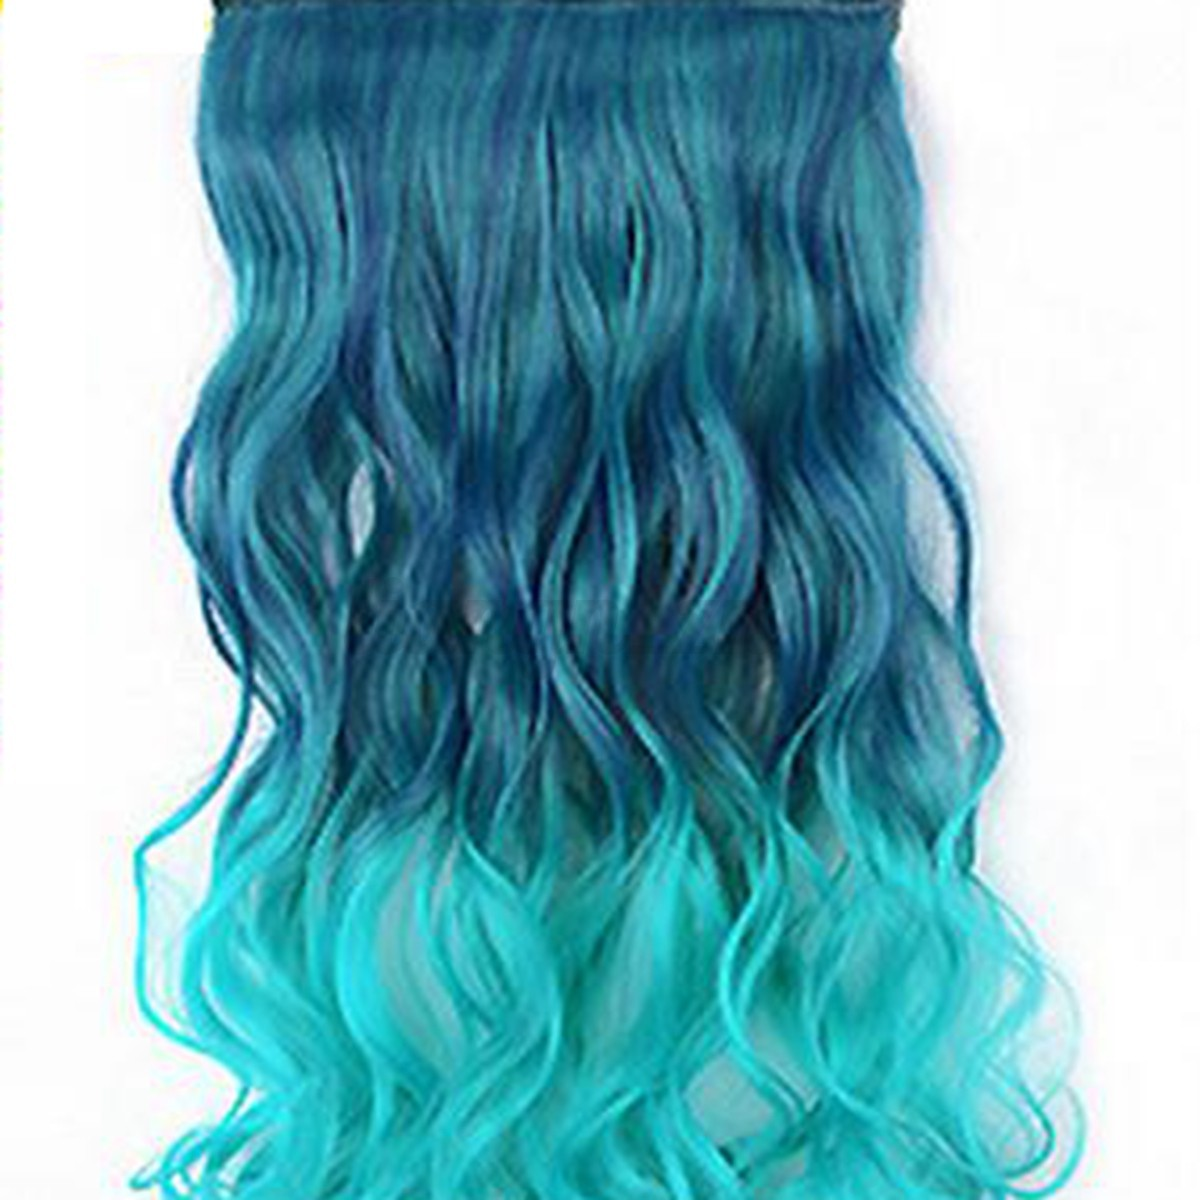 Cheveux-Extensions-Clip-Colore-Cosplay-Perruque-Ondule-Boucle-Raide-Long-Femme